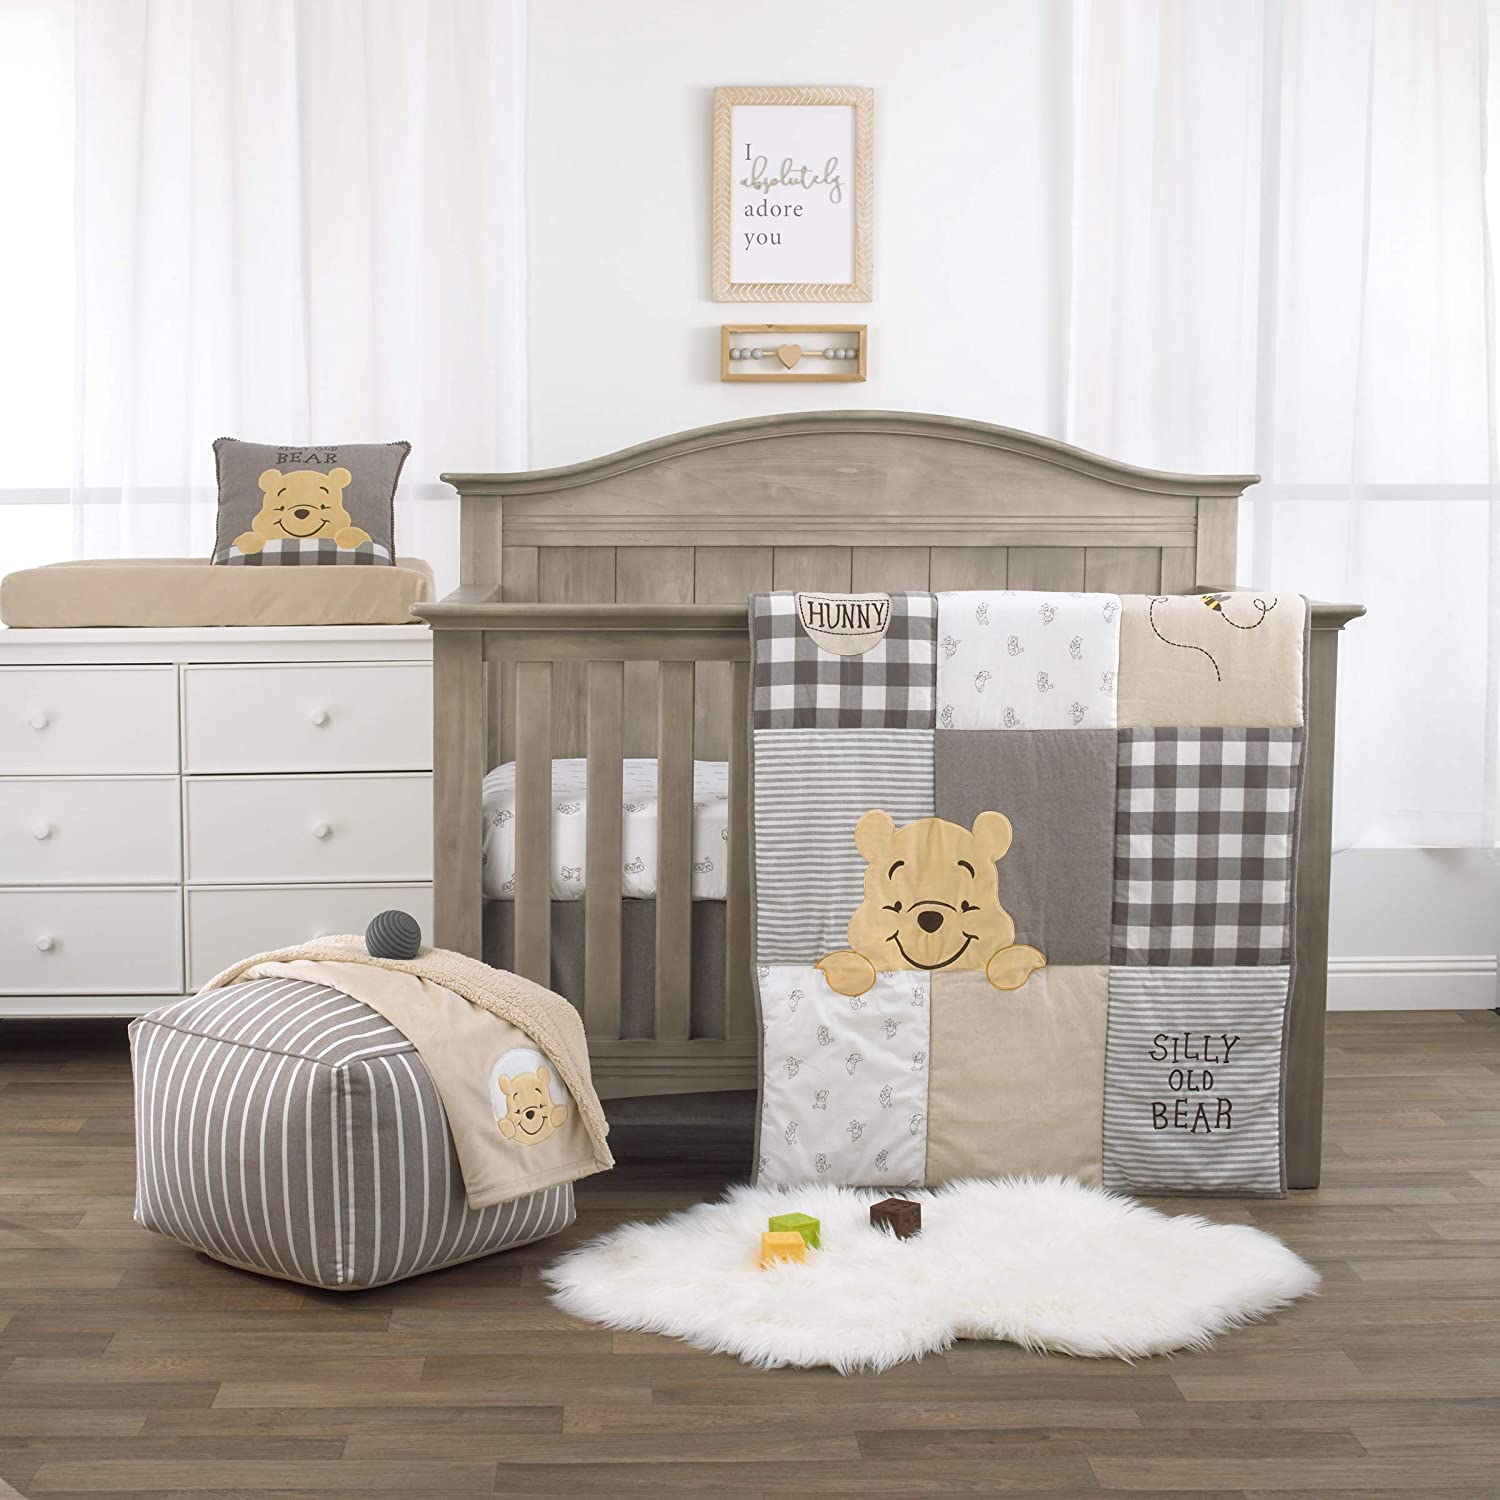 Disney Winnie The Pooh Hunny & Me - Grey, Marigold, White & Charcoal 3Piece Nursery Crib Bedding Set with Comforter, Fitted Crib Sheet & Dust Ruffle, Grey, White, Marigold, Charcoal